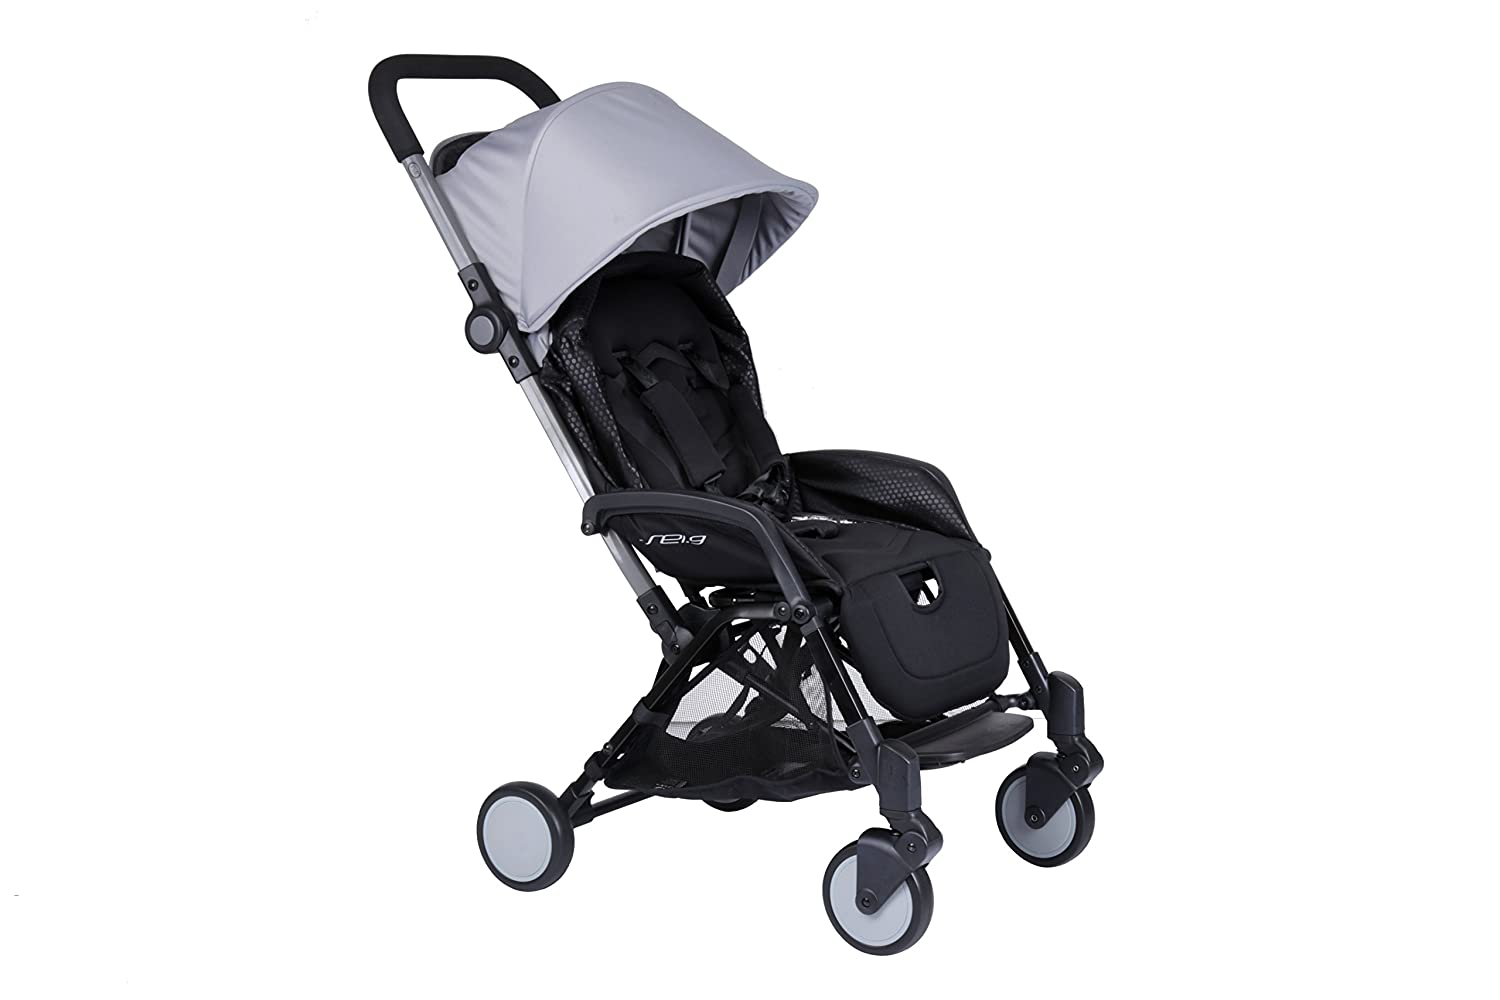 Amazon.com : Pali Sei.9 Compact Travel Stroller Classic New York Black : Baby